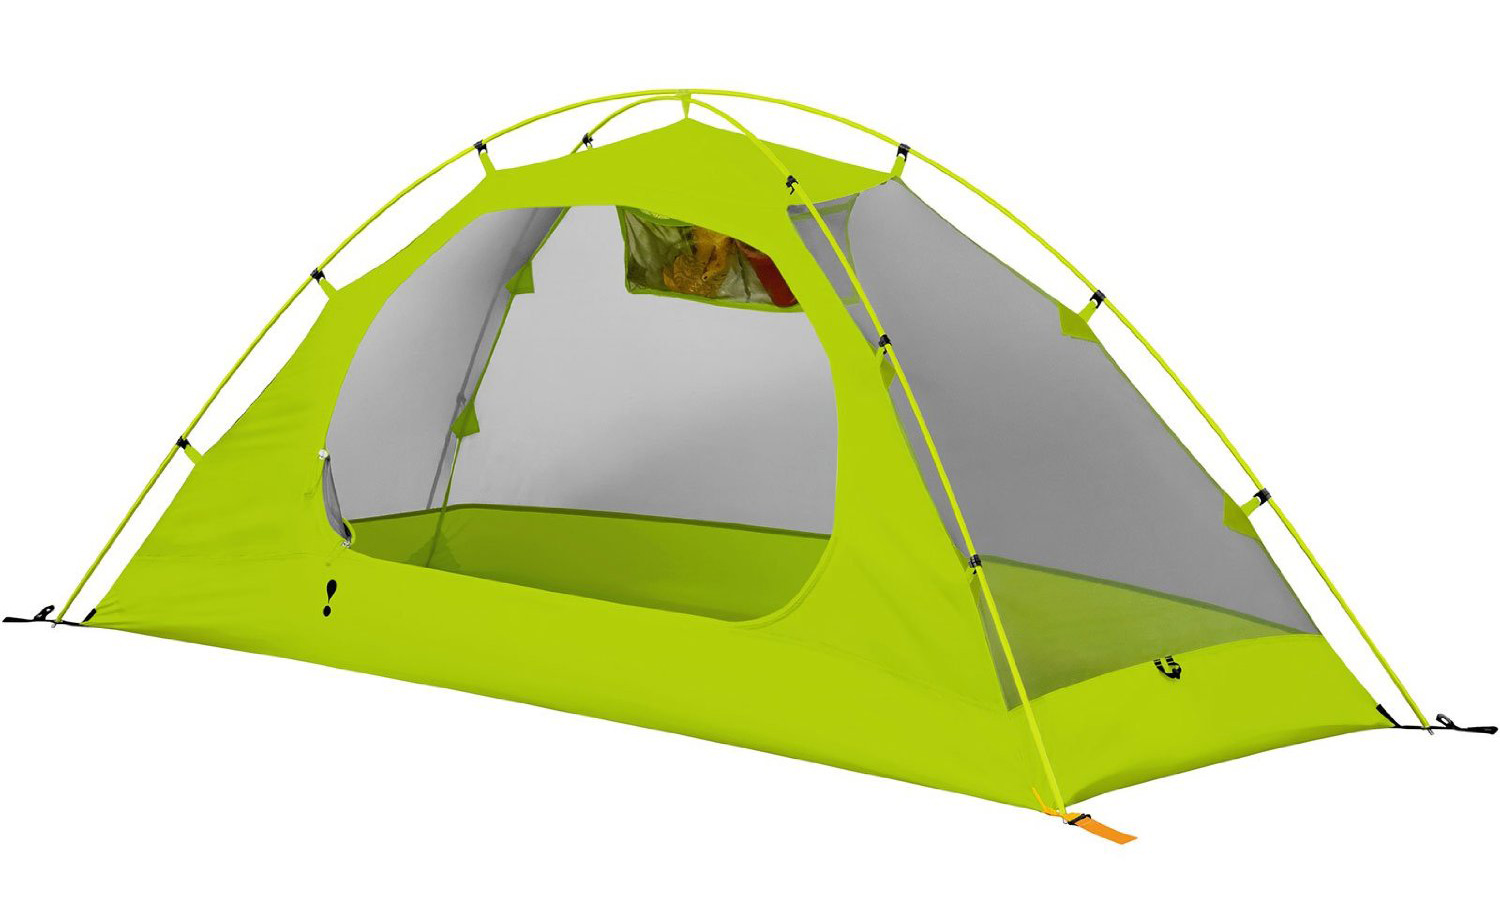 sc 1 th 174 & The Best Eureka Tents For Camping This Year